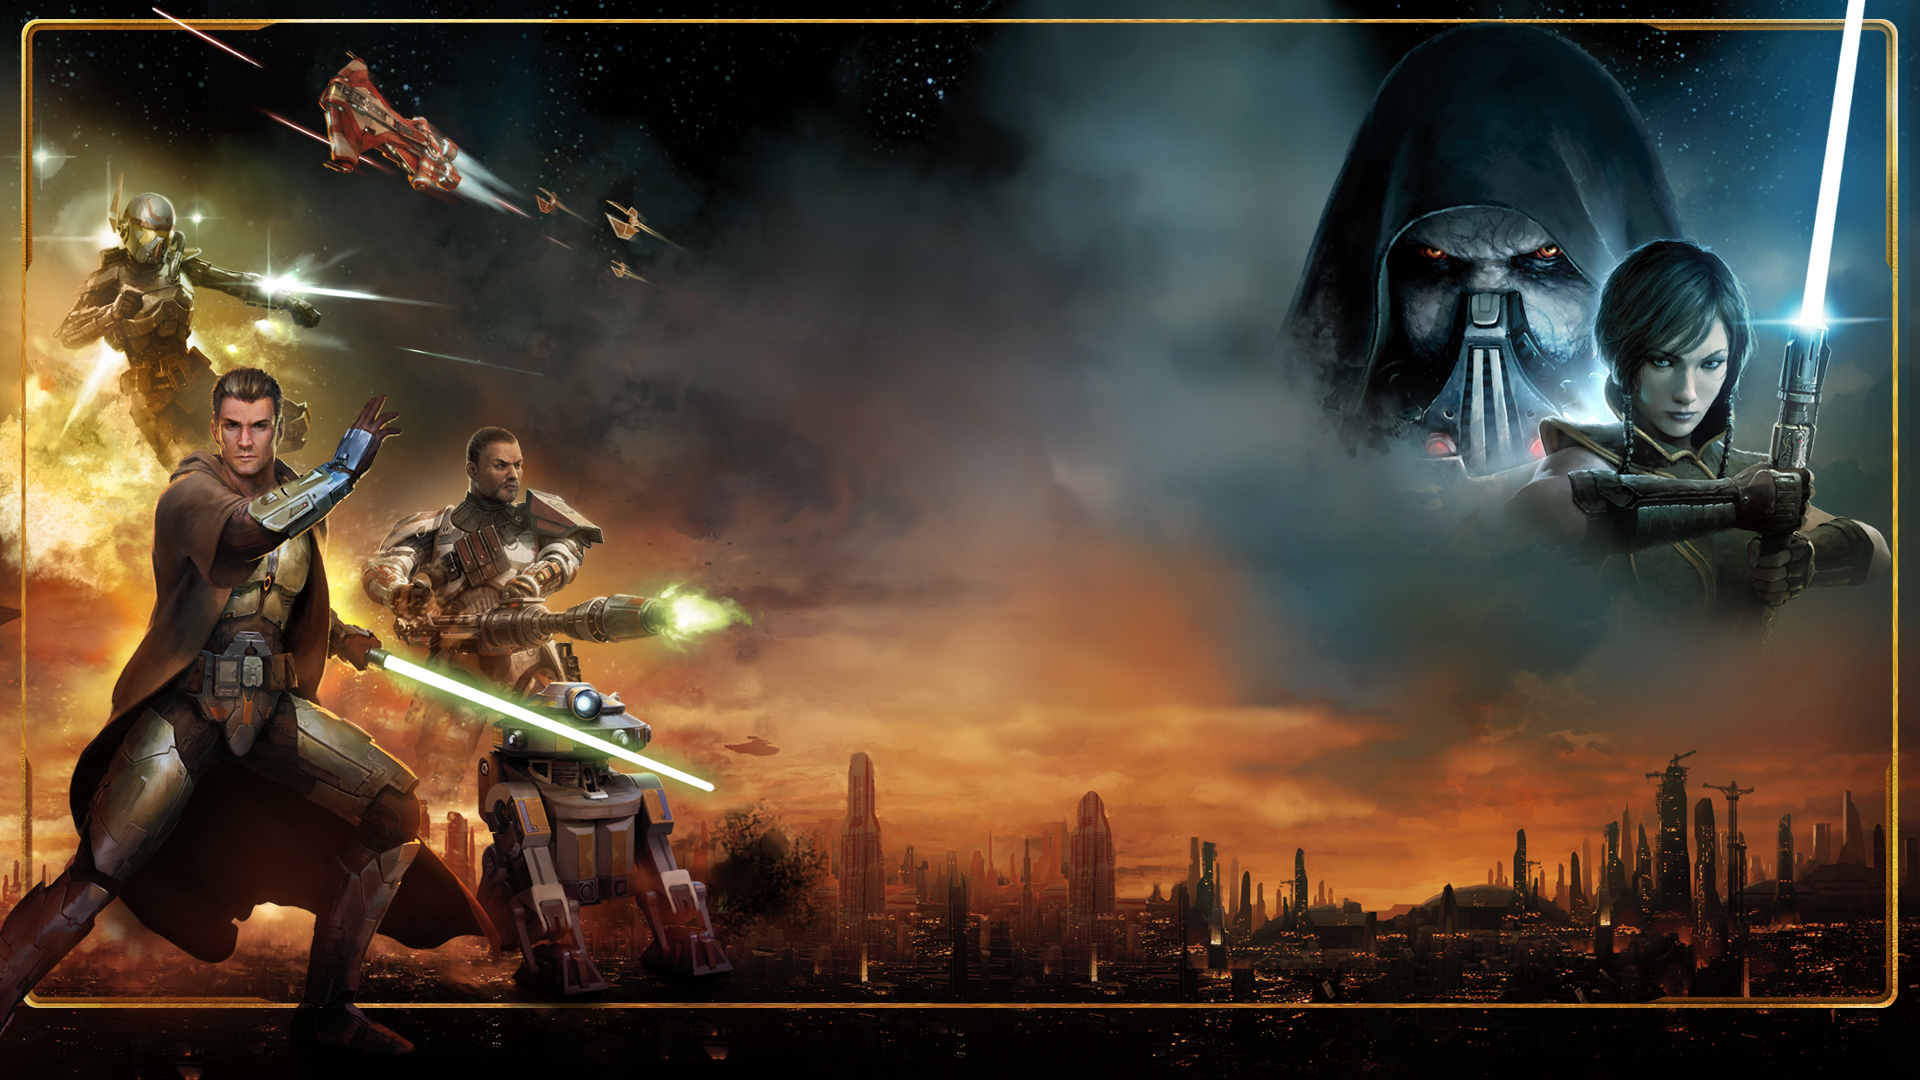 Free Download Star Wars The Old Republic Unofficial Desktops For